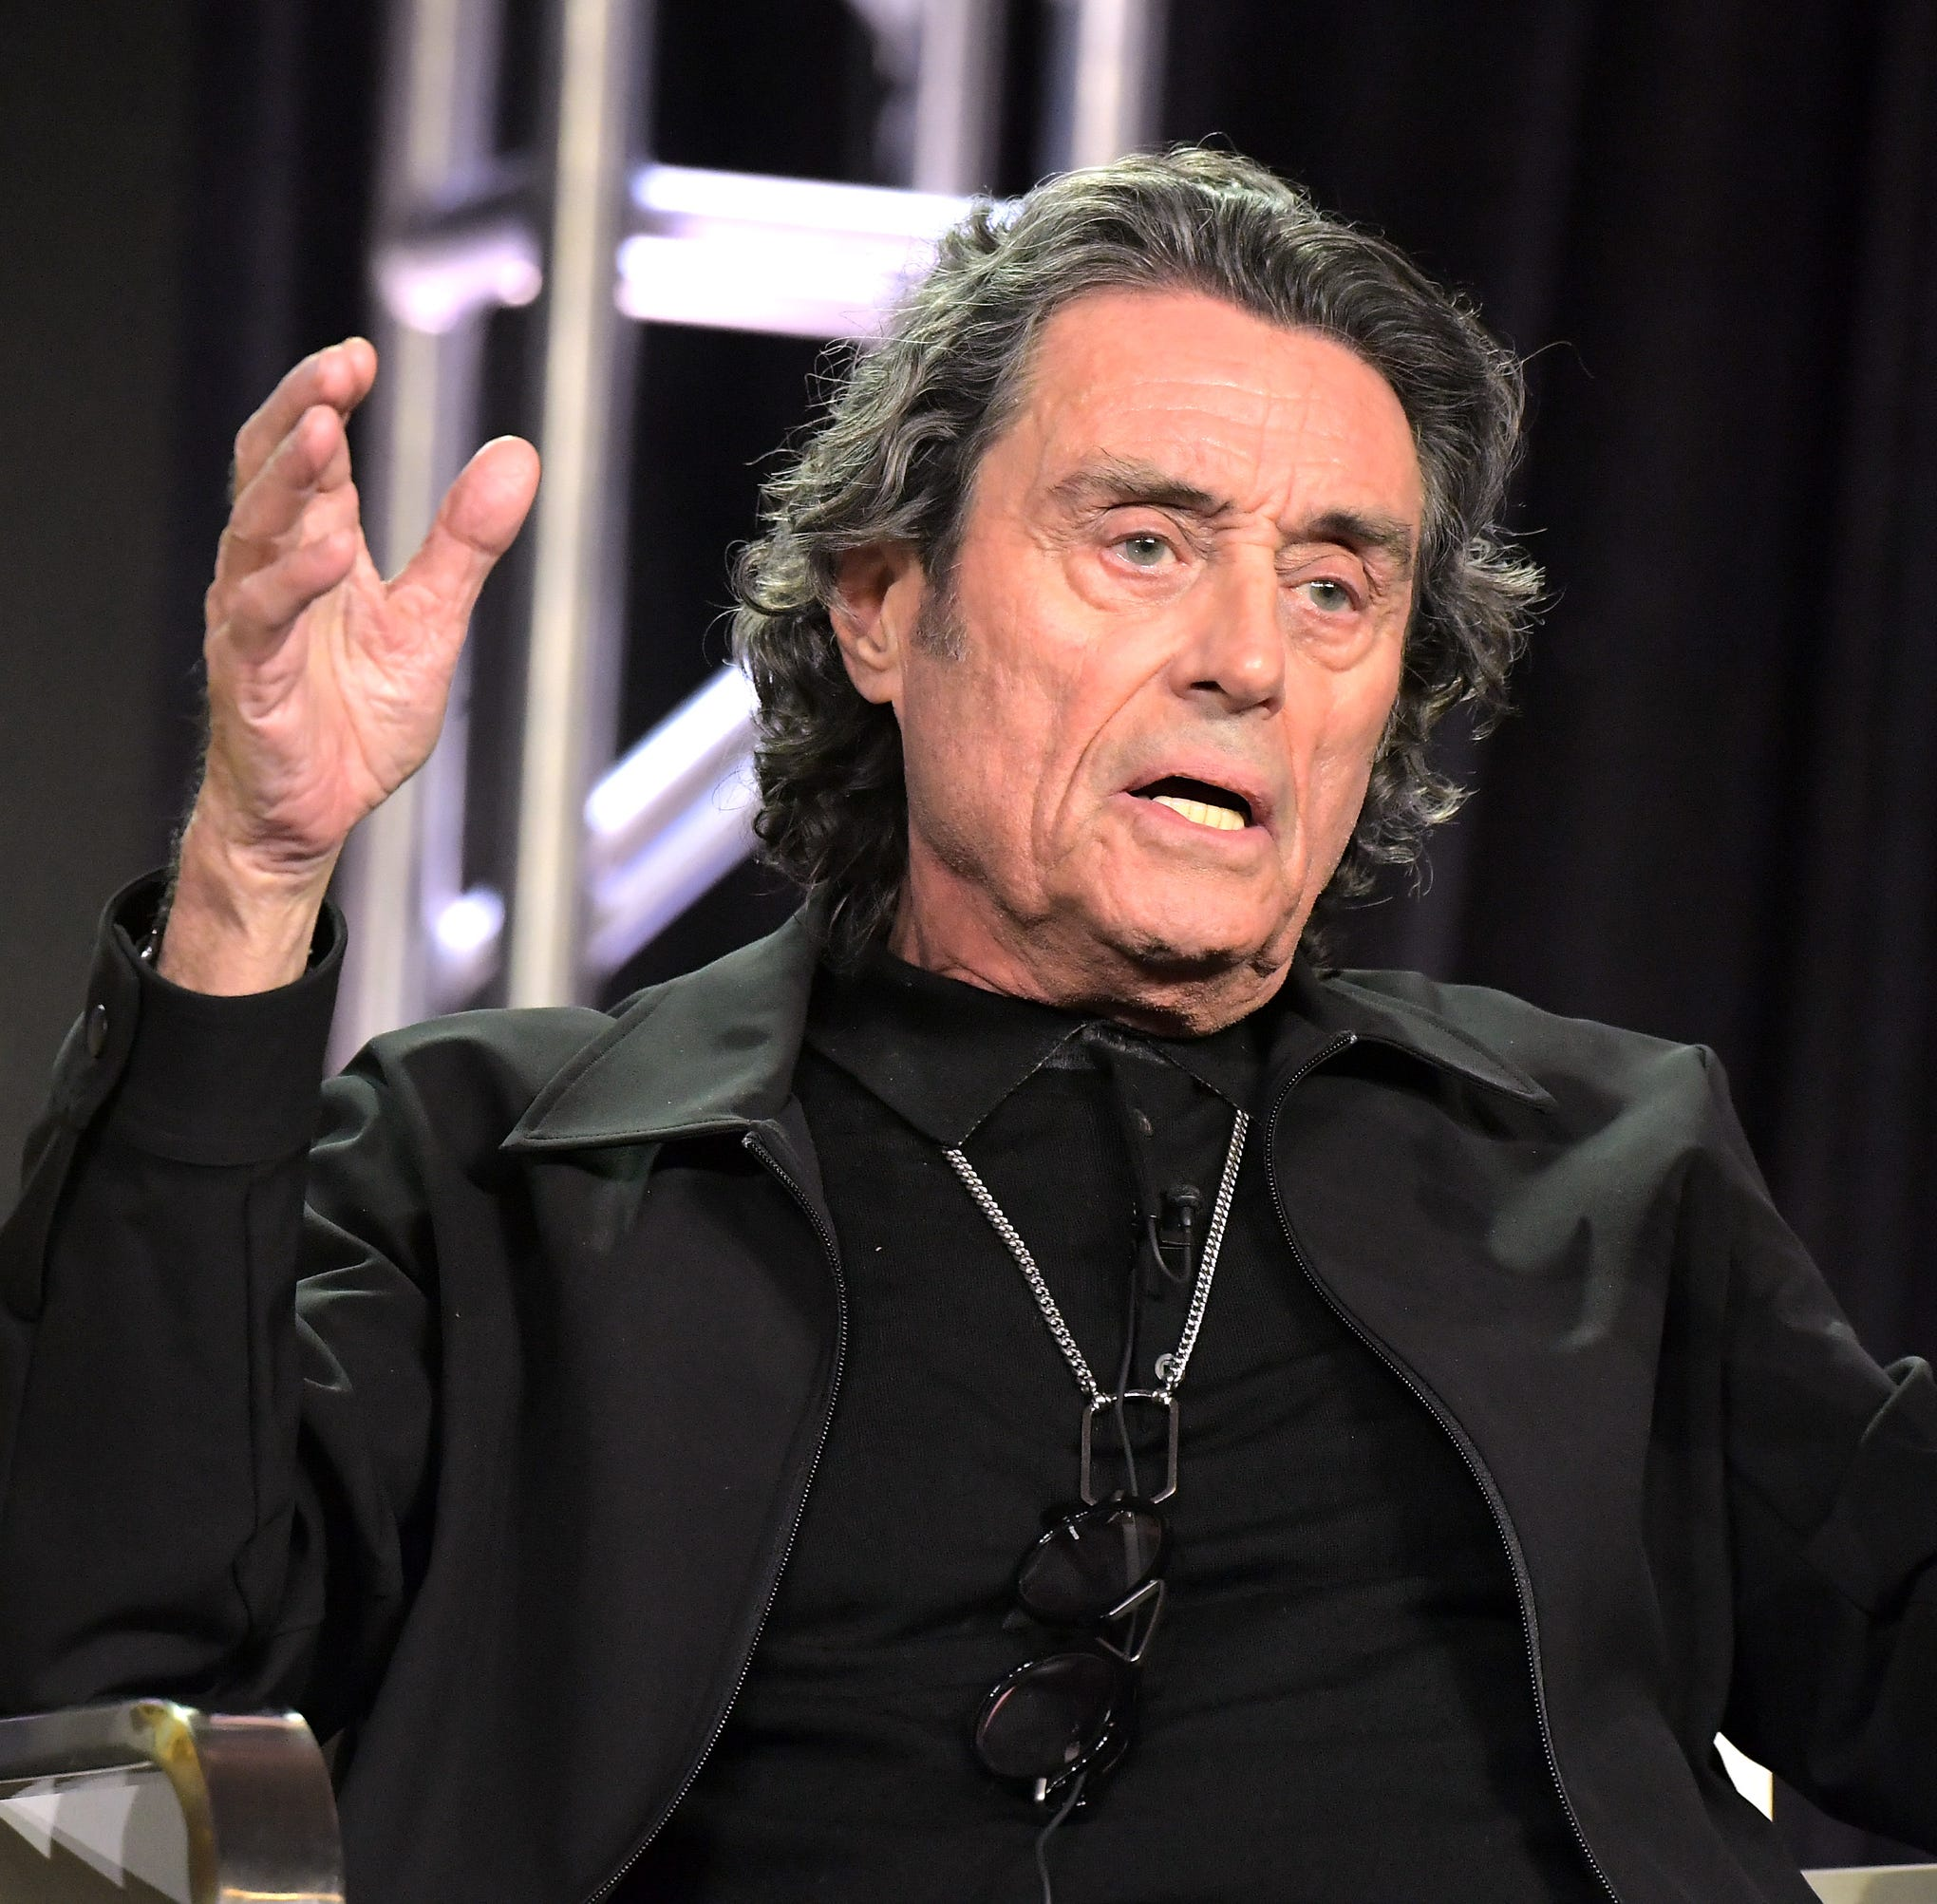 Ian McShane, who attended a Television Critics Association panel Tuesday to discuss Starz' 'American Gods,' also briefly discussed HBO's upcoming 'Deadwood' film.